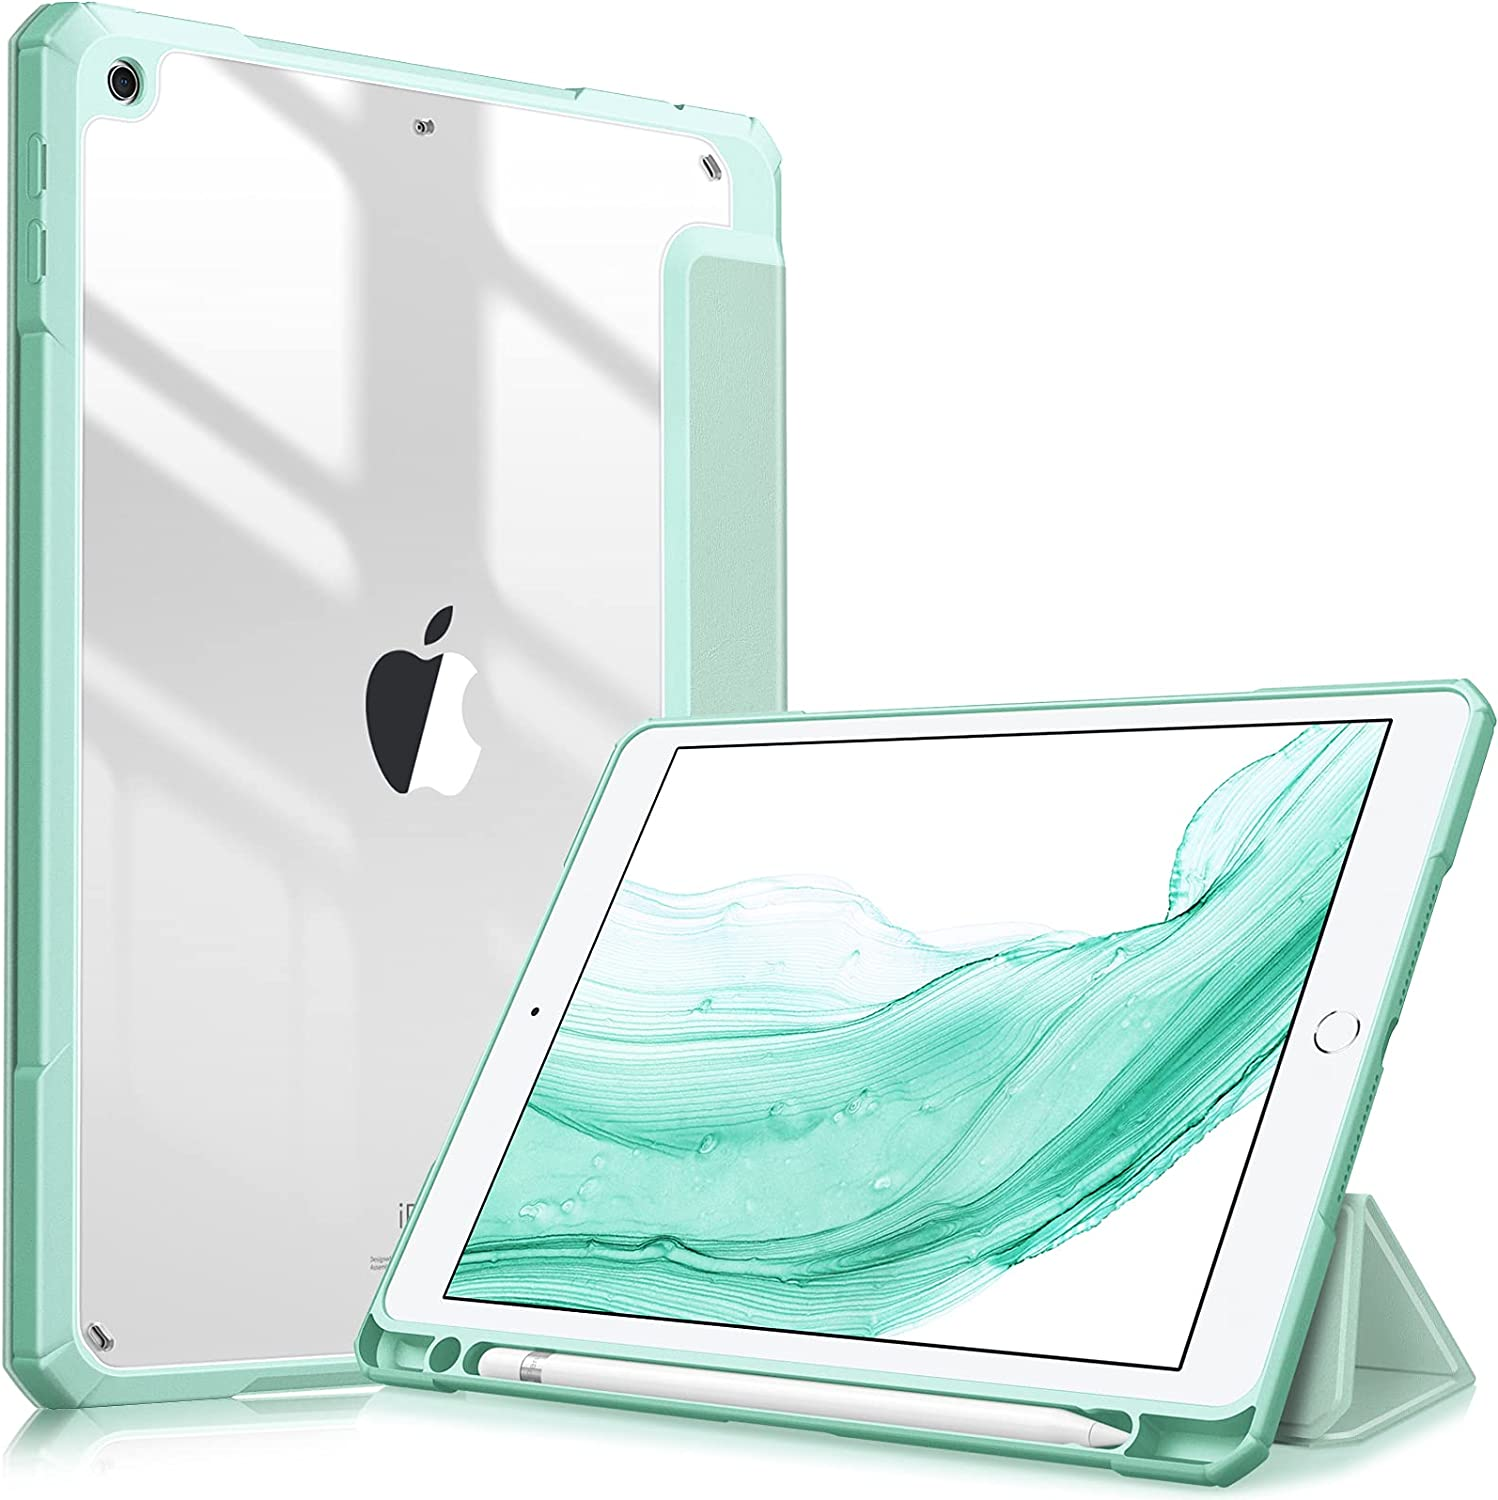 Fintie Hybrid Slim Case for iPad 6th Generation (2018) / 5th Gen (2017) 9.7 Inch - [Built-in Pencil Holder] Shockproof Cover with Clear Transparent Back Shell, Auto Wake/Sleep, Green